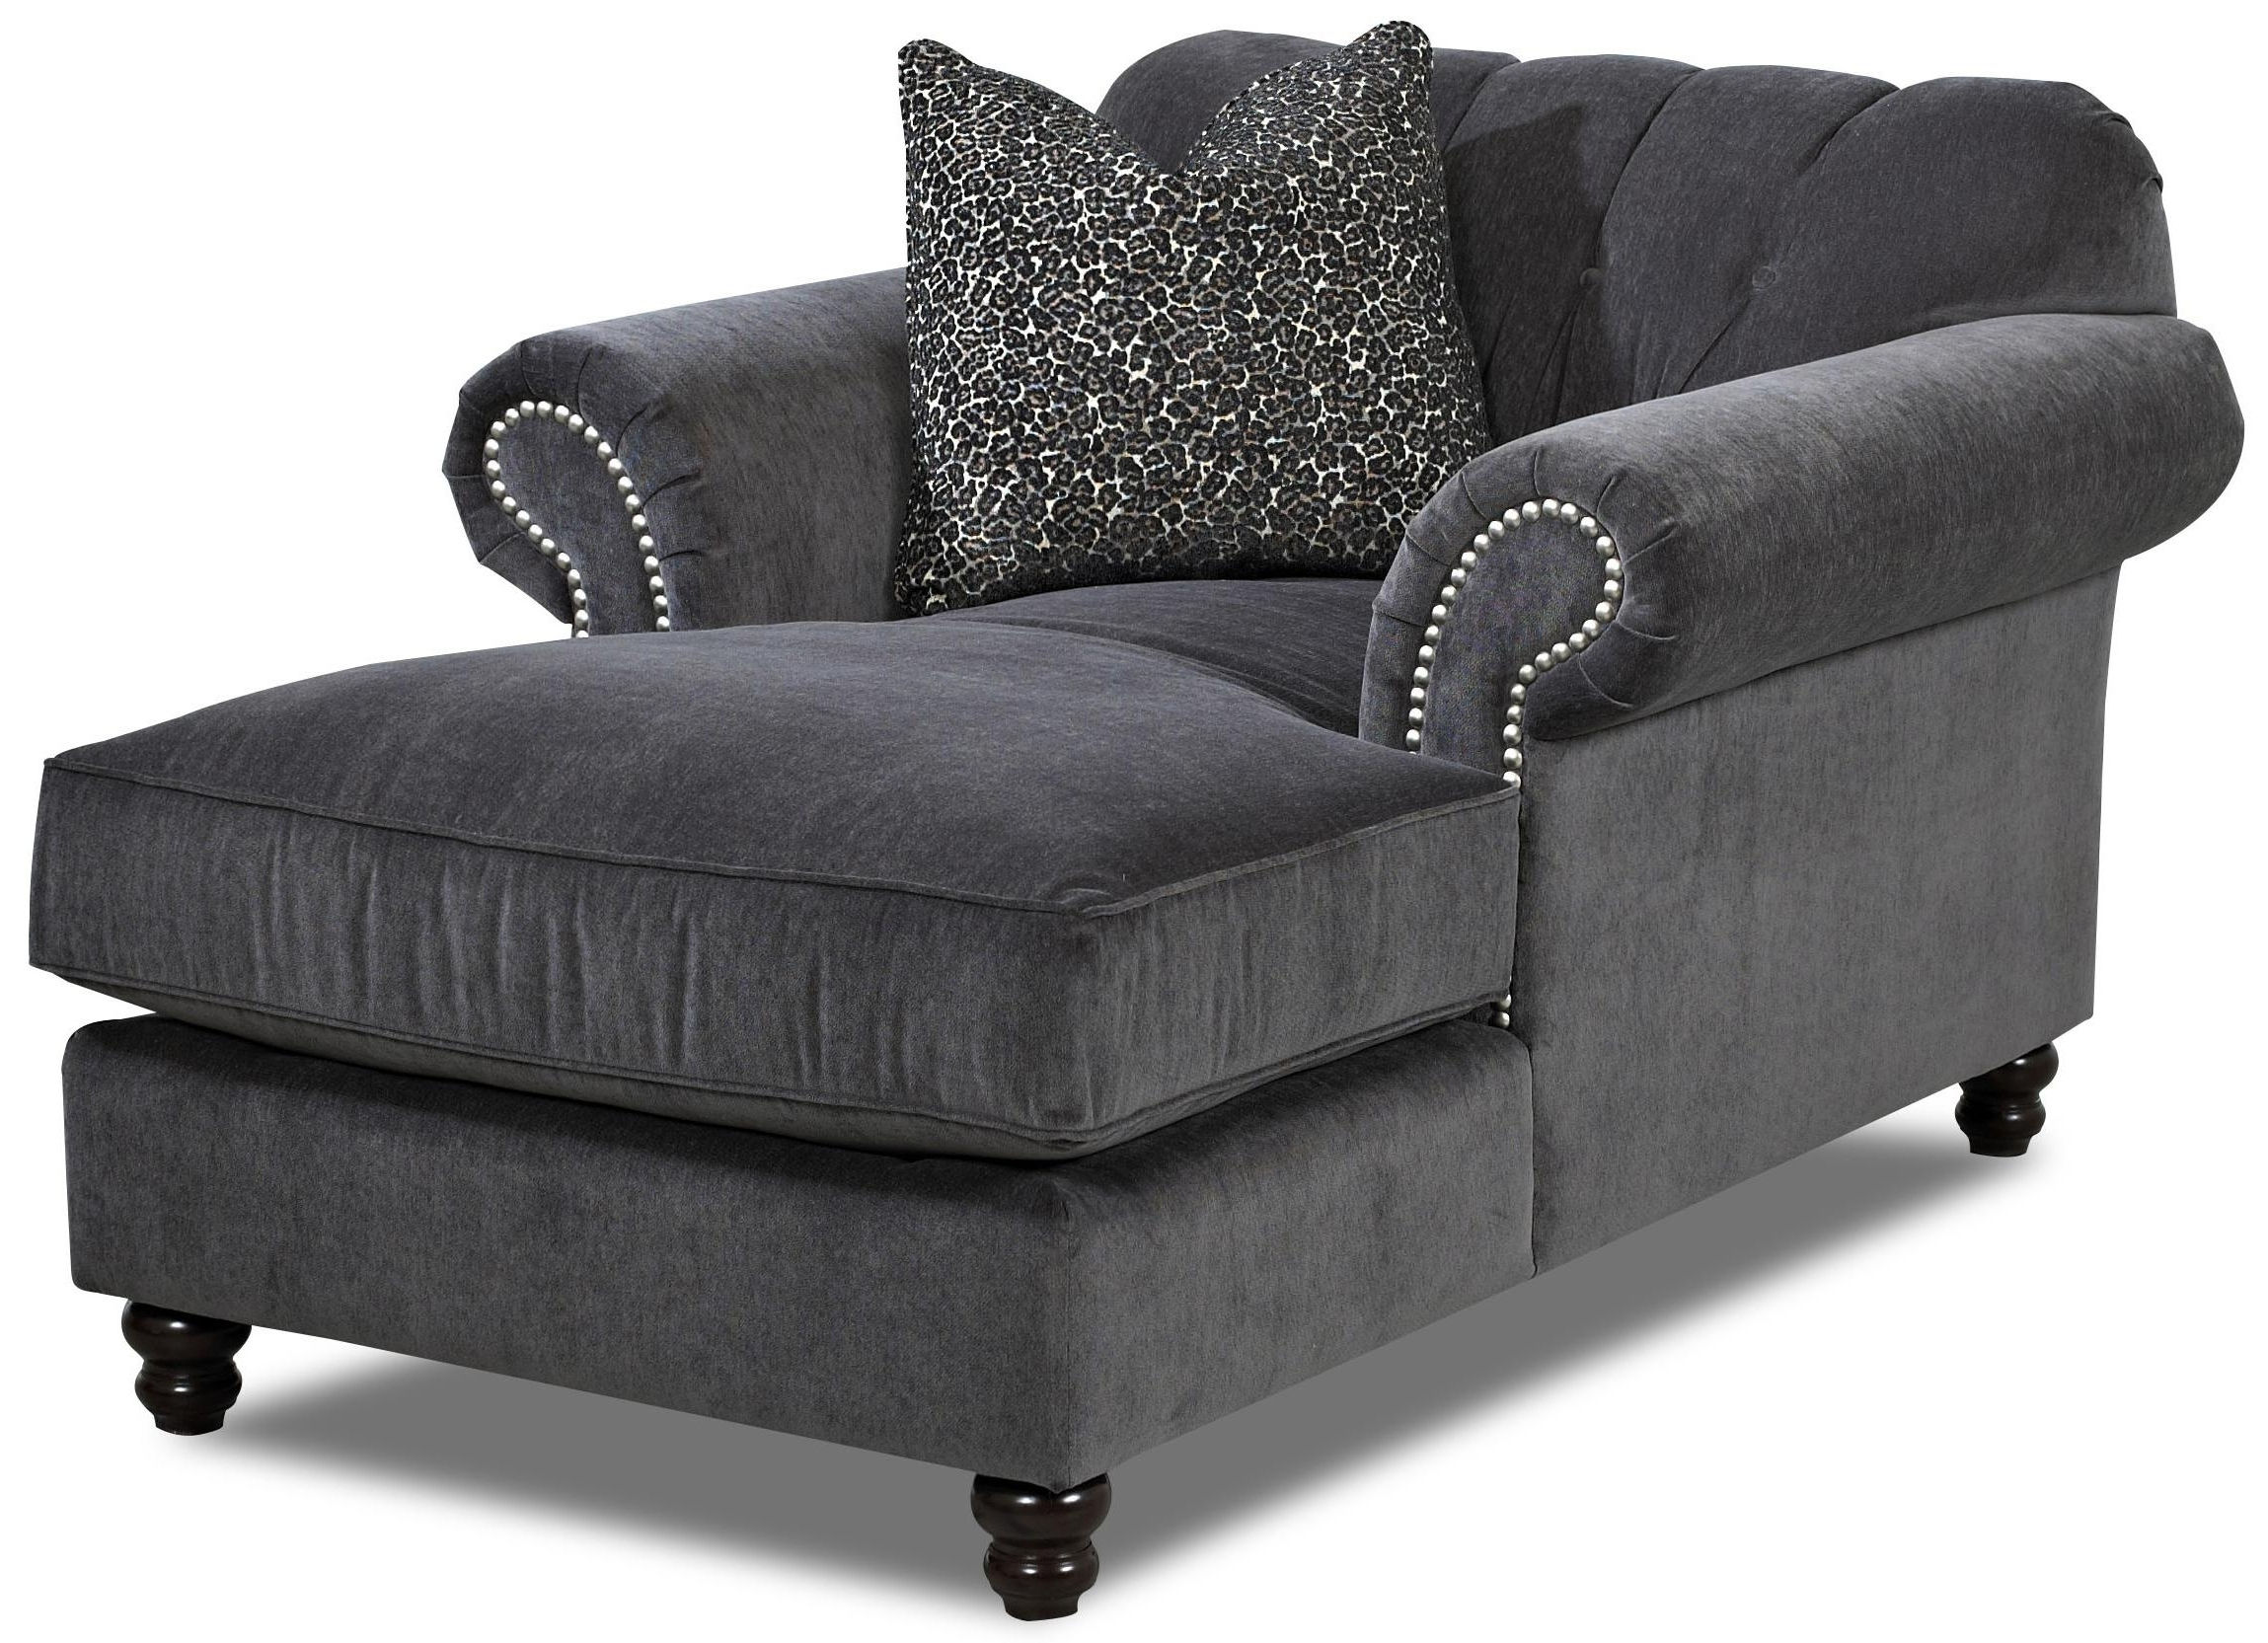 Trendy Grey Chaise Lounges Within Lounge Chair : Furniture Oversized Chaise Lounge Sofa Leather (View 12 of 15)